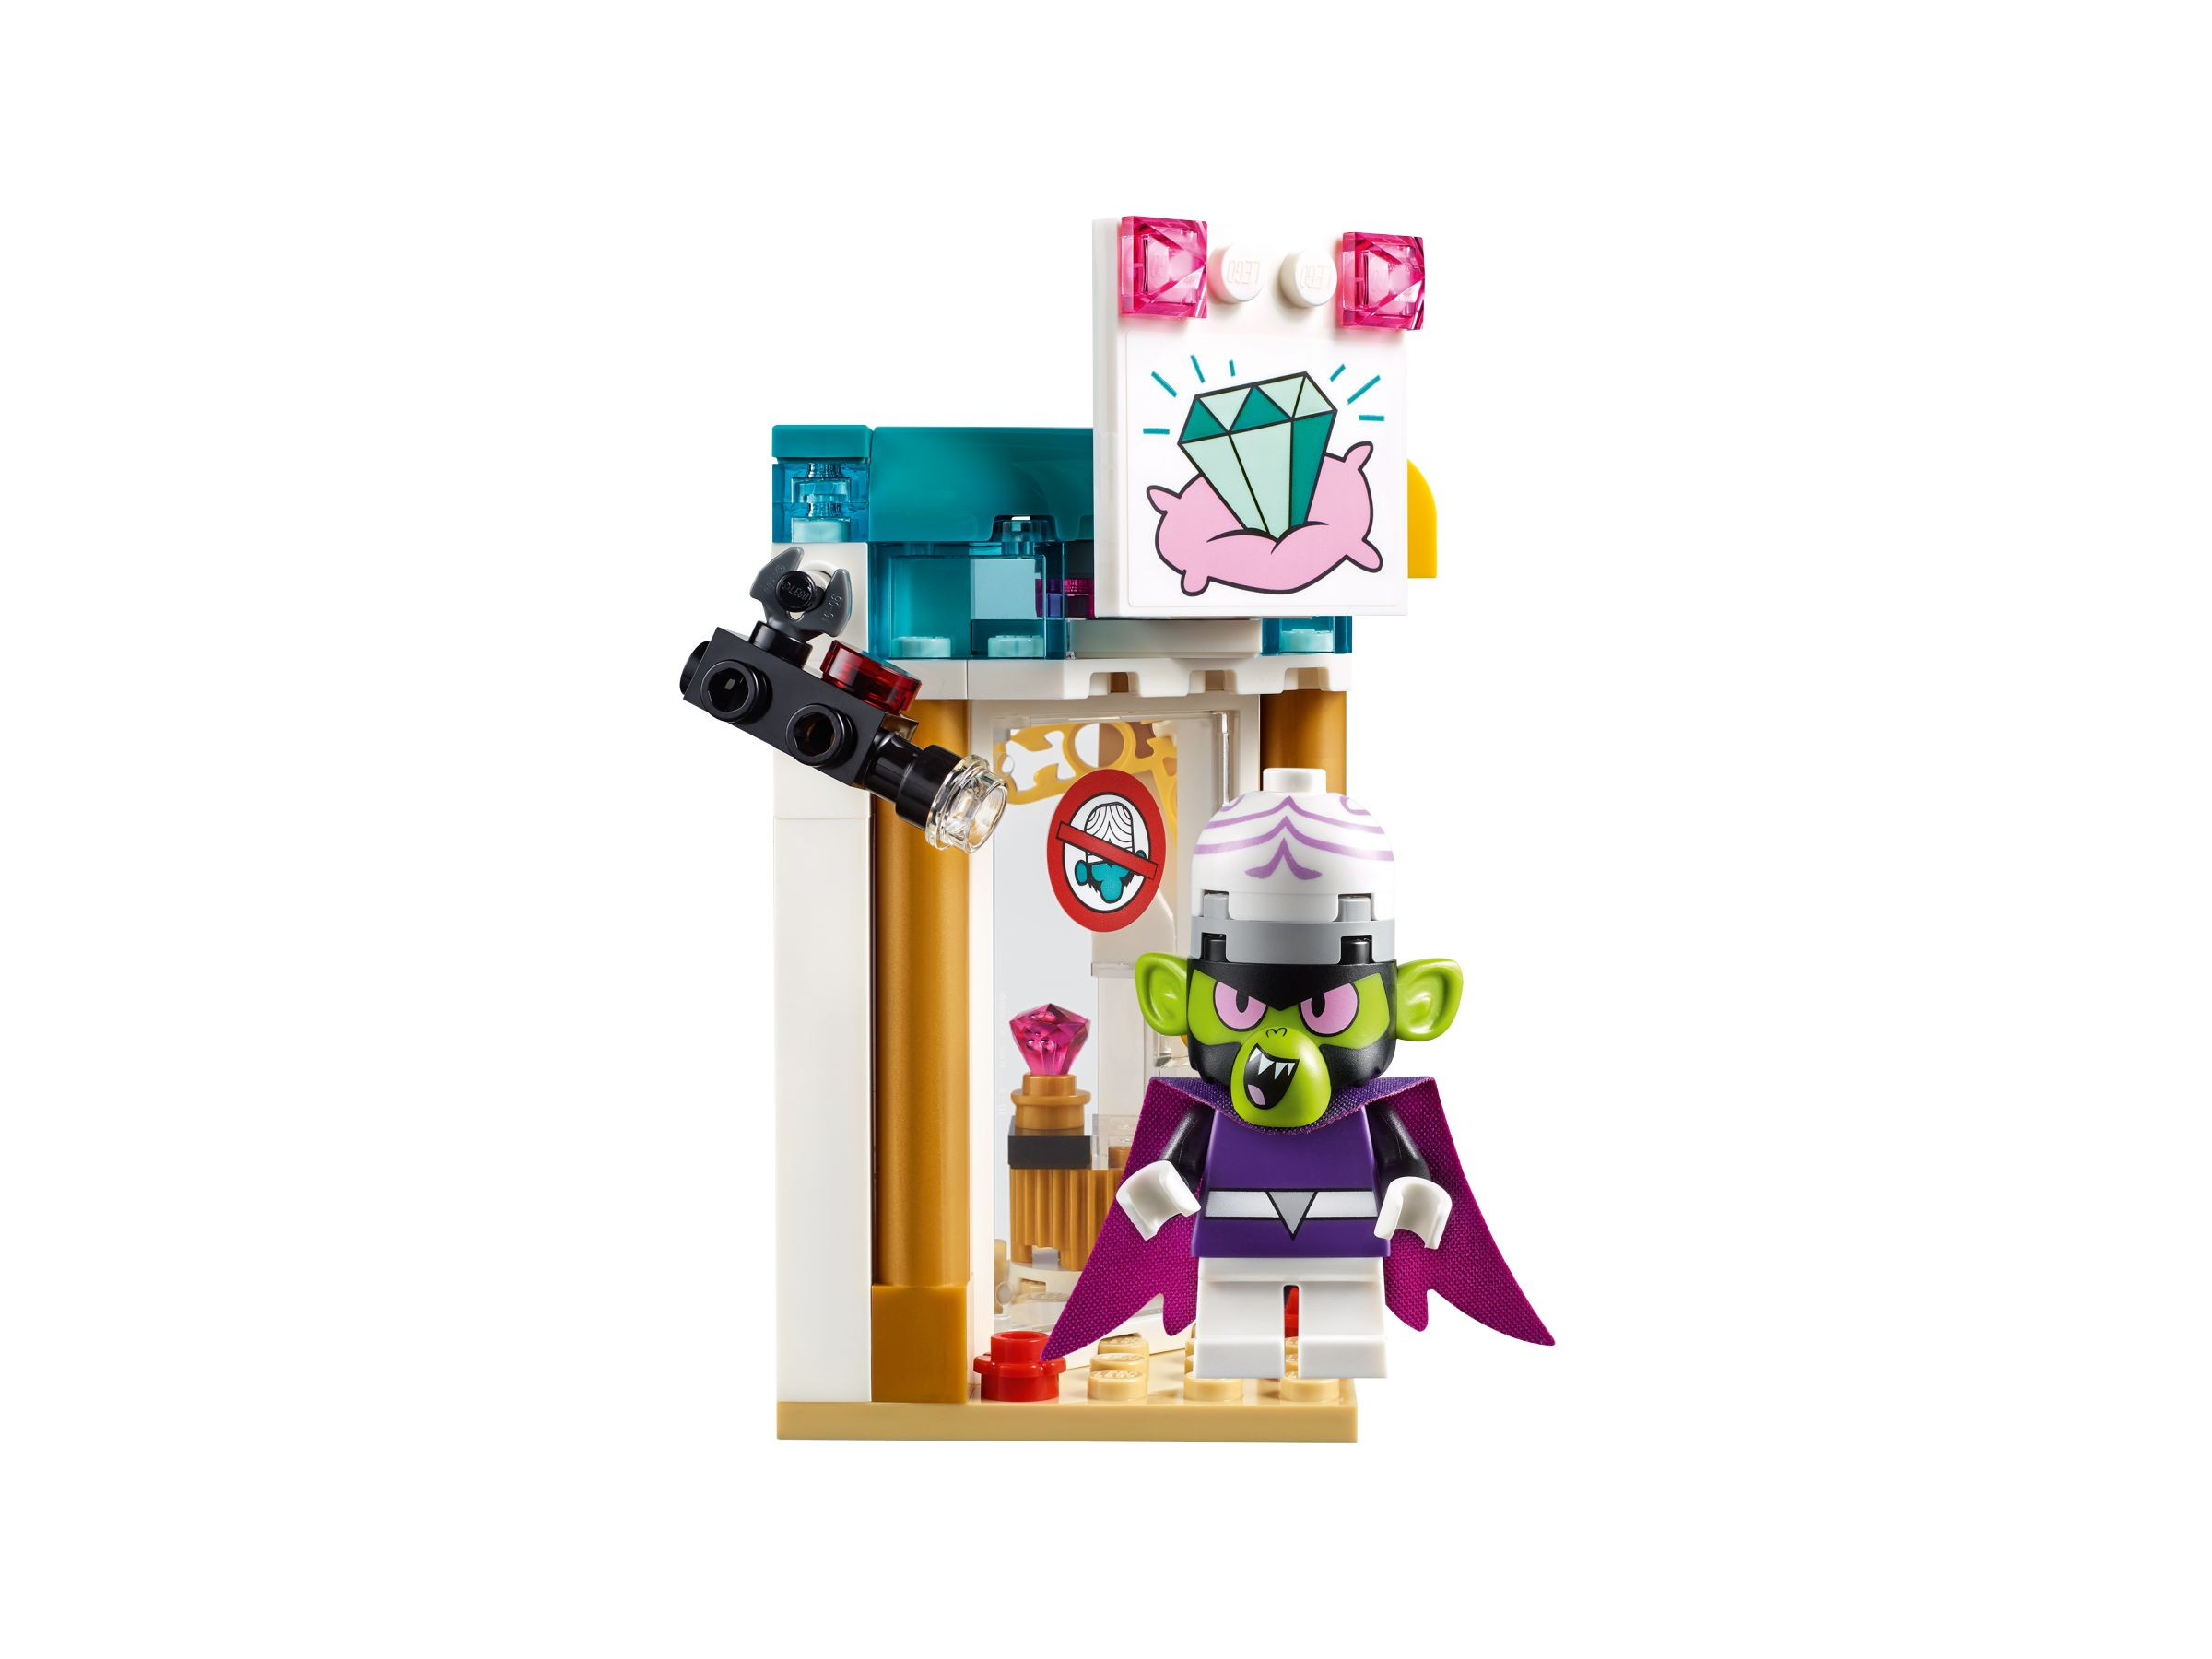 LEGO The Powerpuff Girls 41288 Angriff von Mojo Jojo LEGO_41288_alt5.jpg